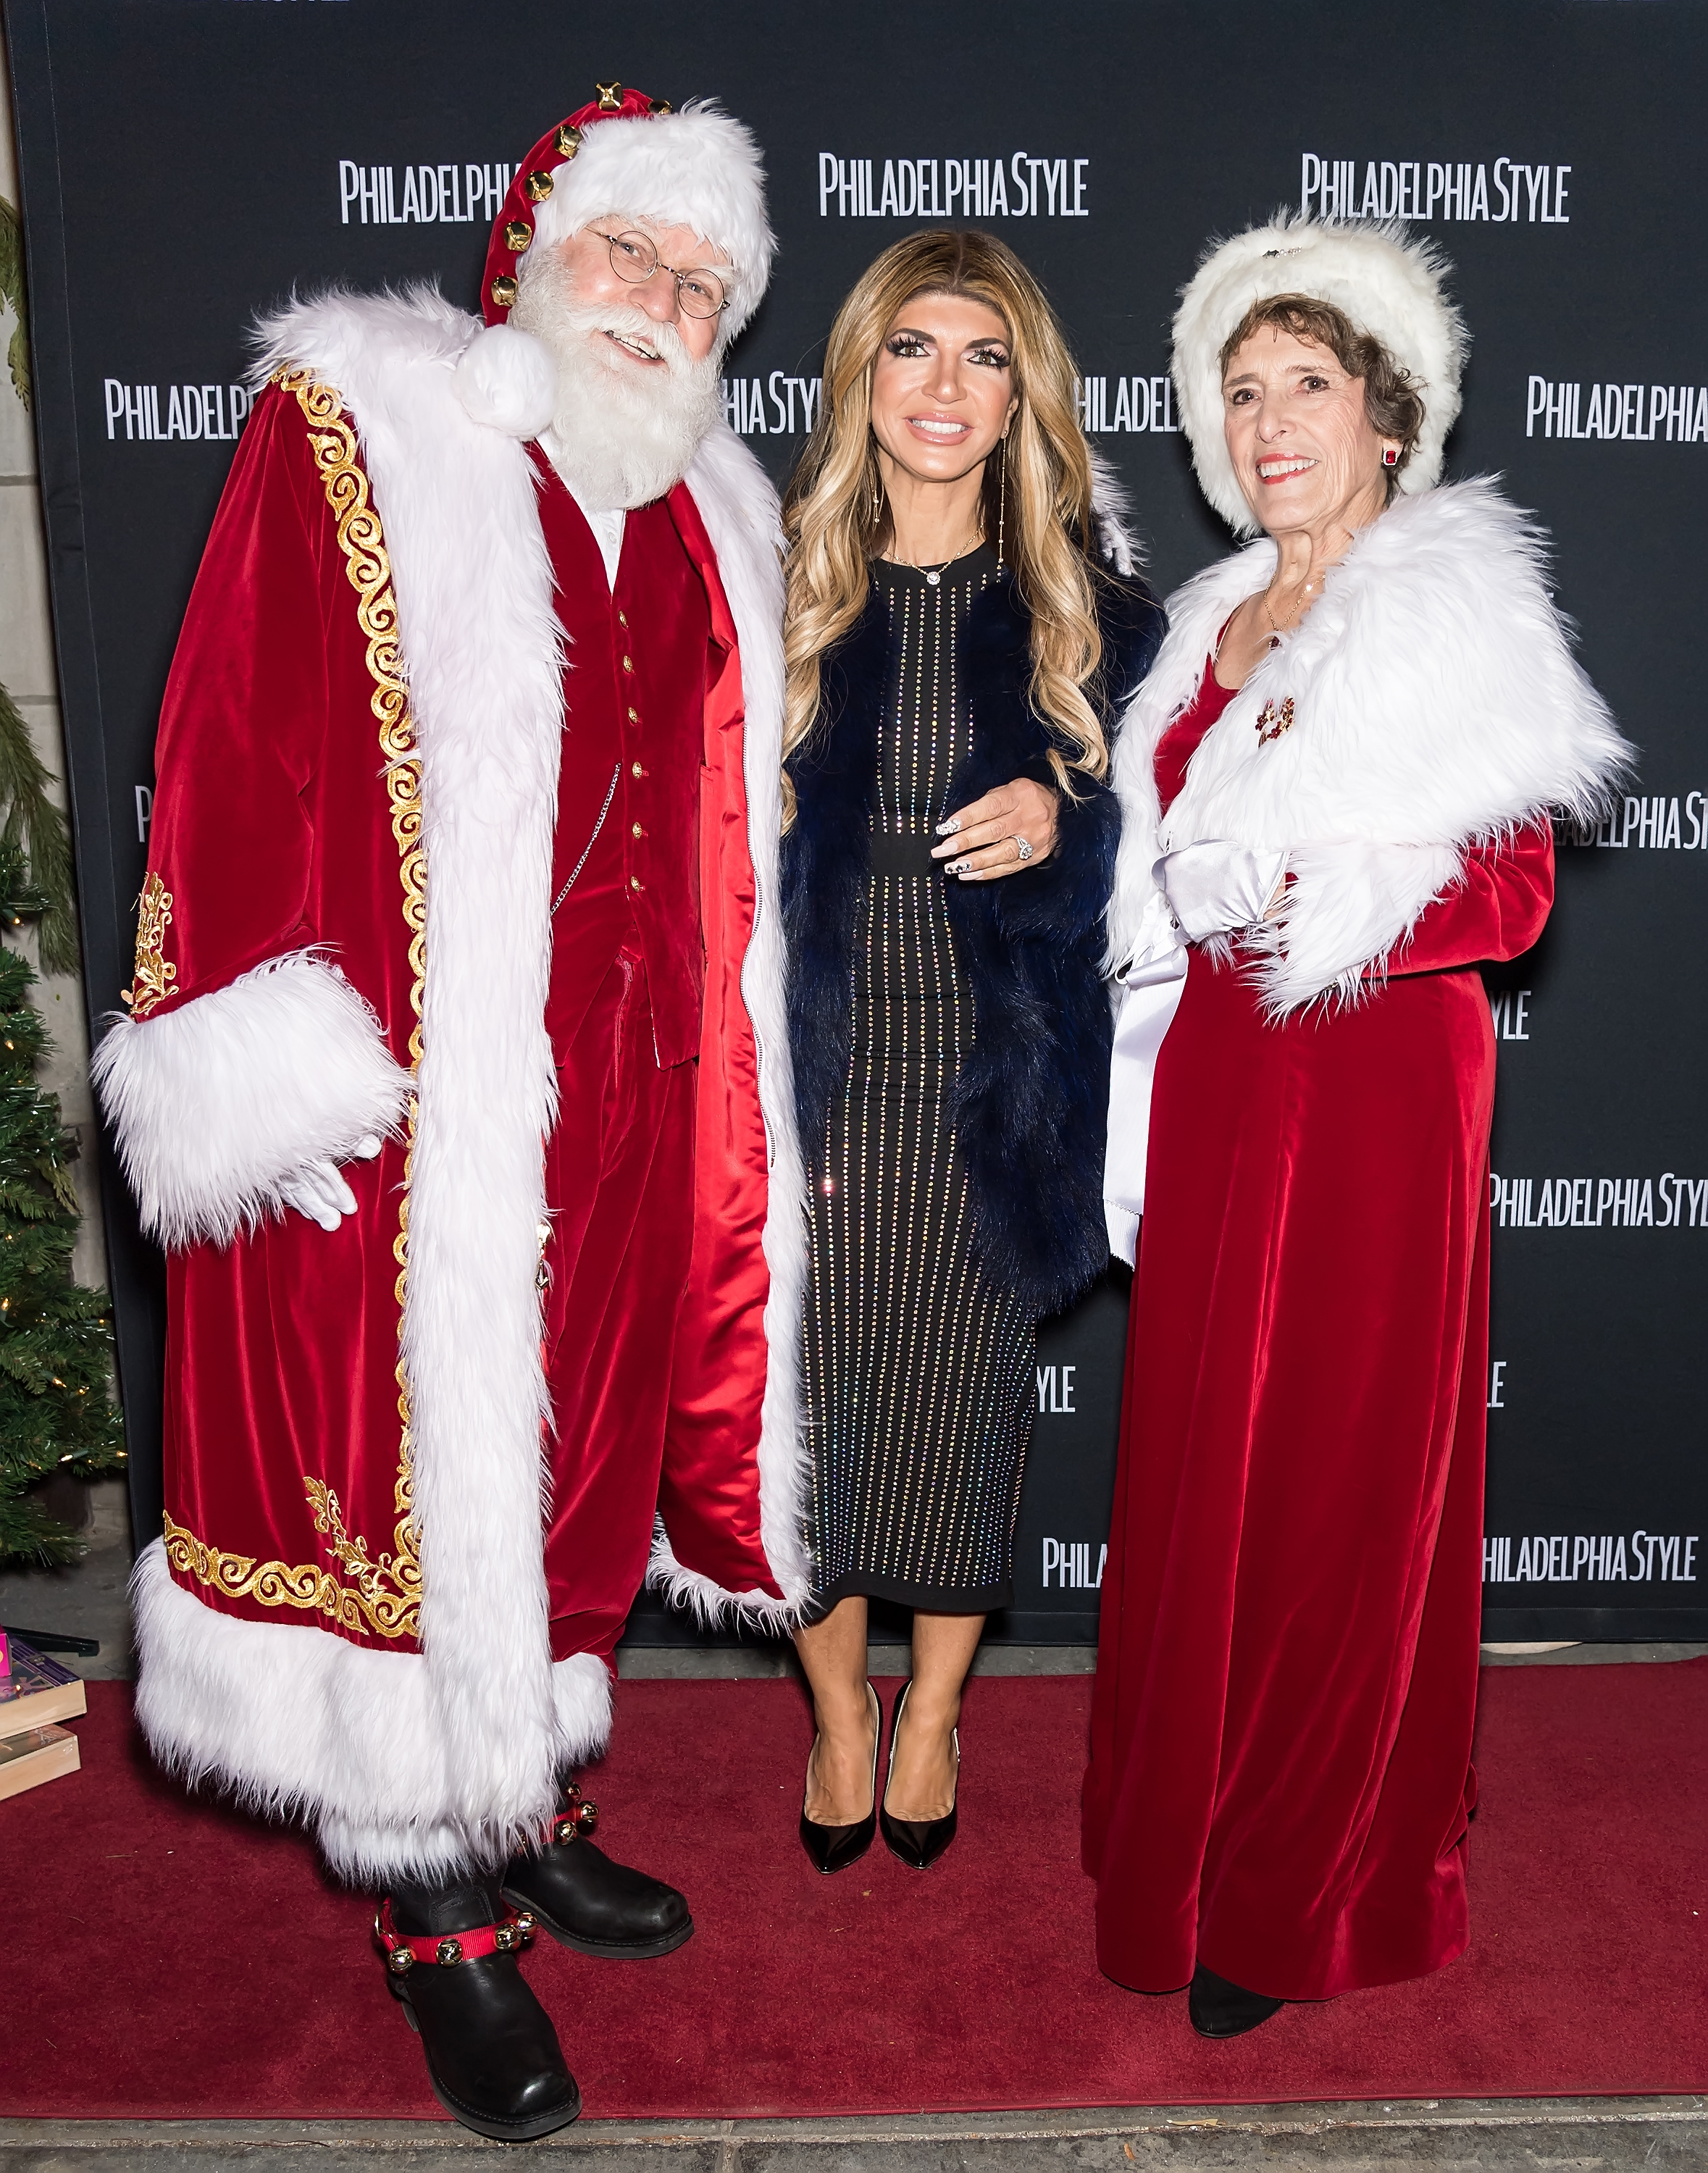 Teresa Giudice poses with Santa Claus and Mrs. Claus during 'Sleigh' A Toys for Tots Event and Meet & Greet in Philadelphia, Pennsylvania on Dec. 7, 2017.